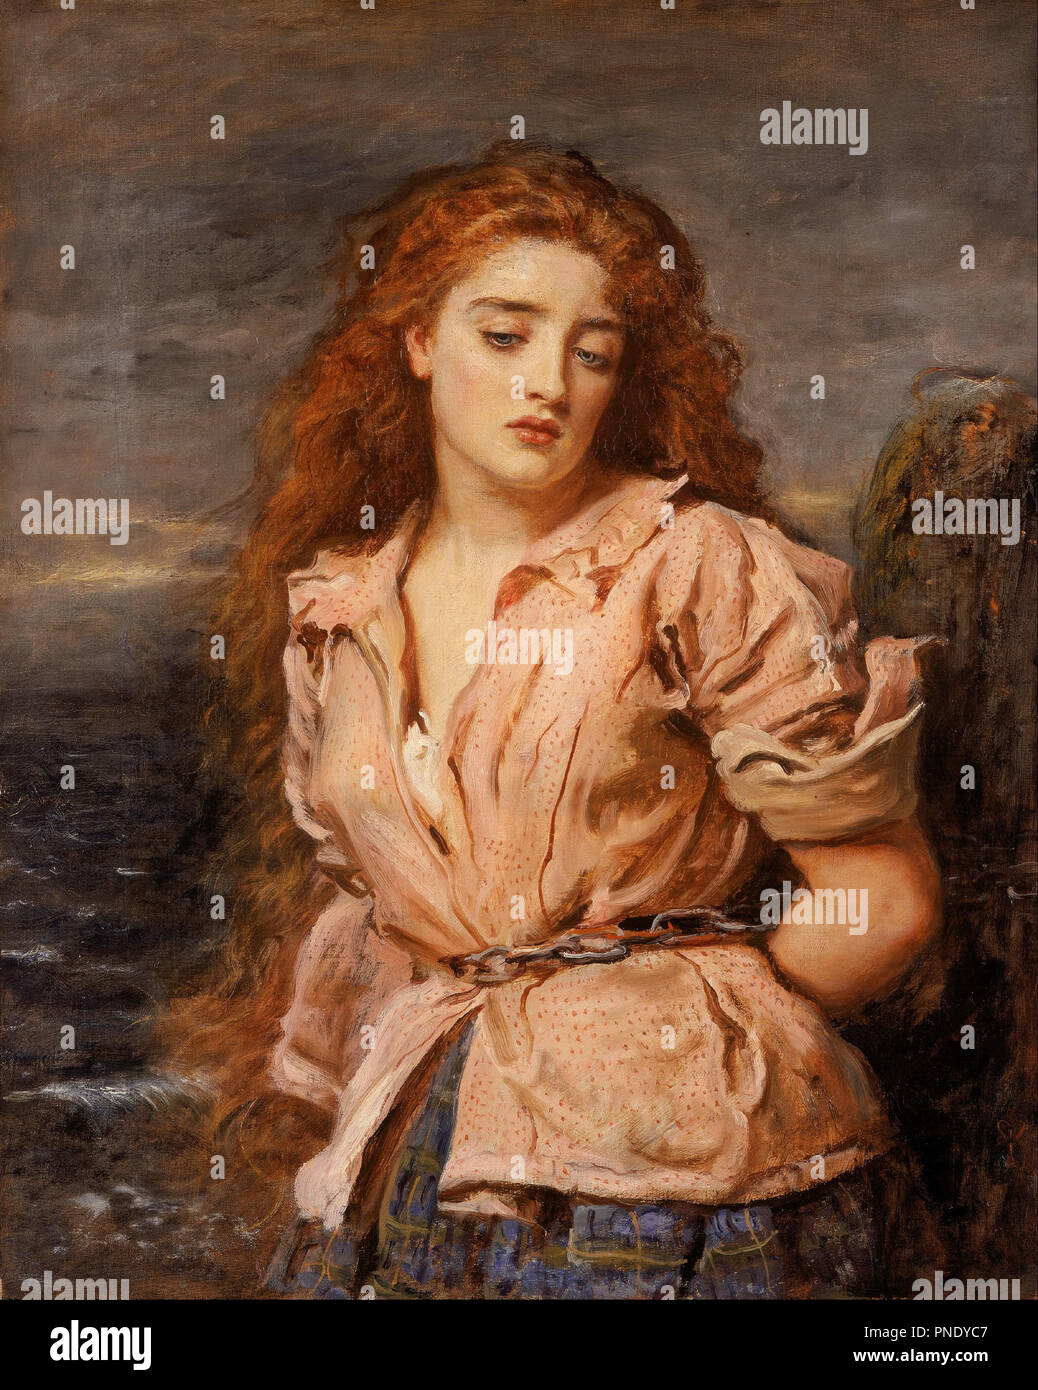 The Martyr of the Solway. Date/Period: Ca. 1871. Painting. Oil on canvas. Height: 705 mm (27.75 in); Width: 565 mm (22.24 in). Author: JOHN EVERETT MILLAIS. - Stock Image